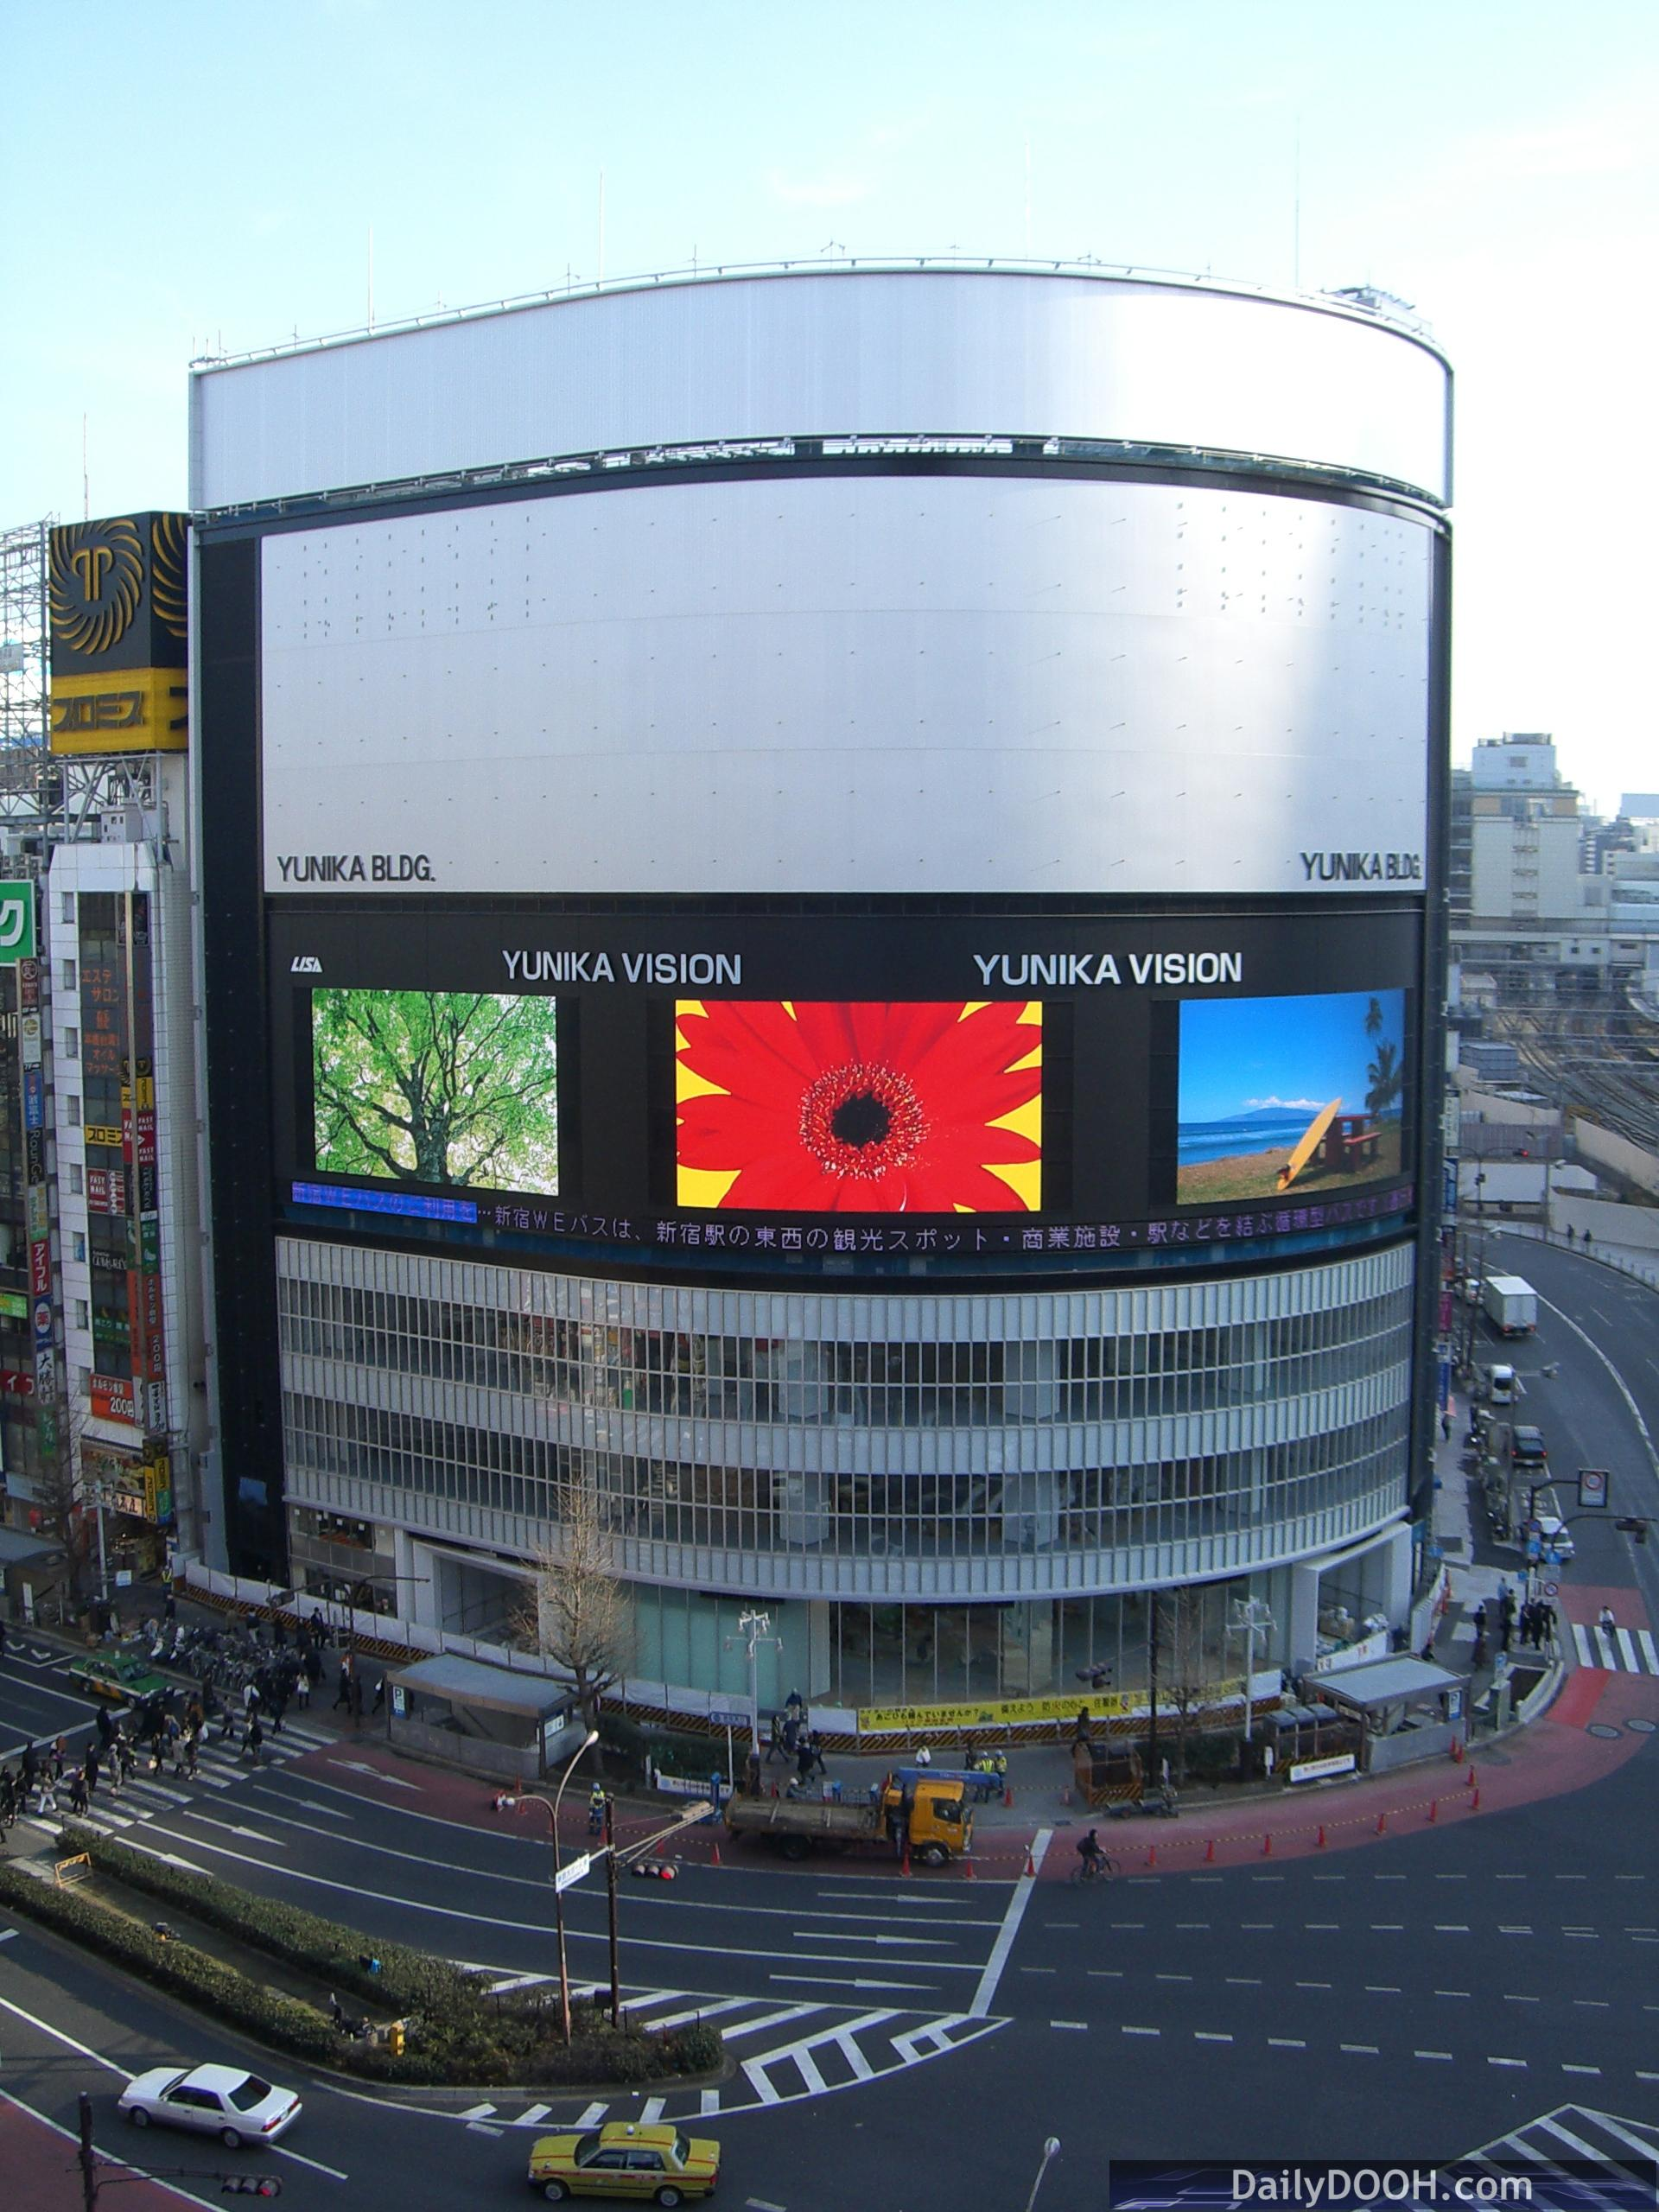 Dailydooh 187 Blog Archive 187 Japan S Largest Outdoor Screen